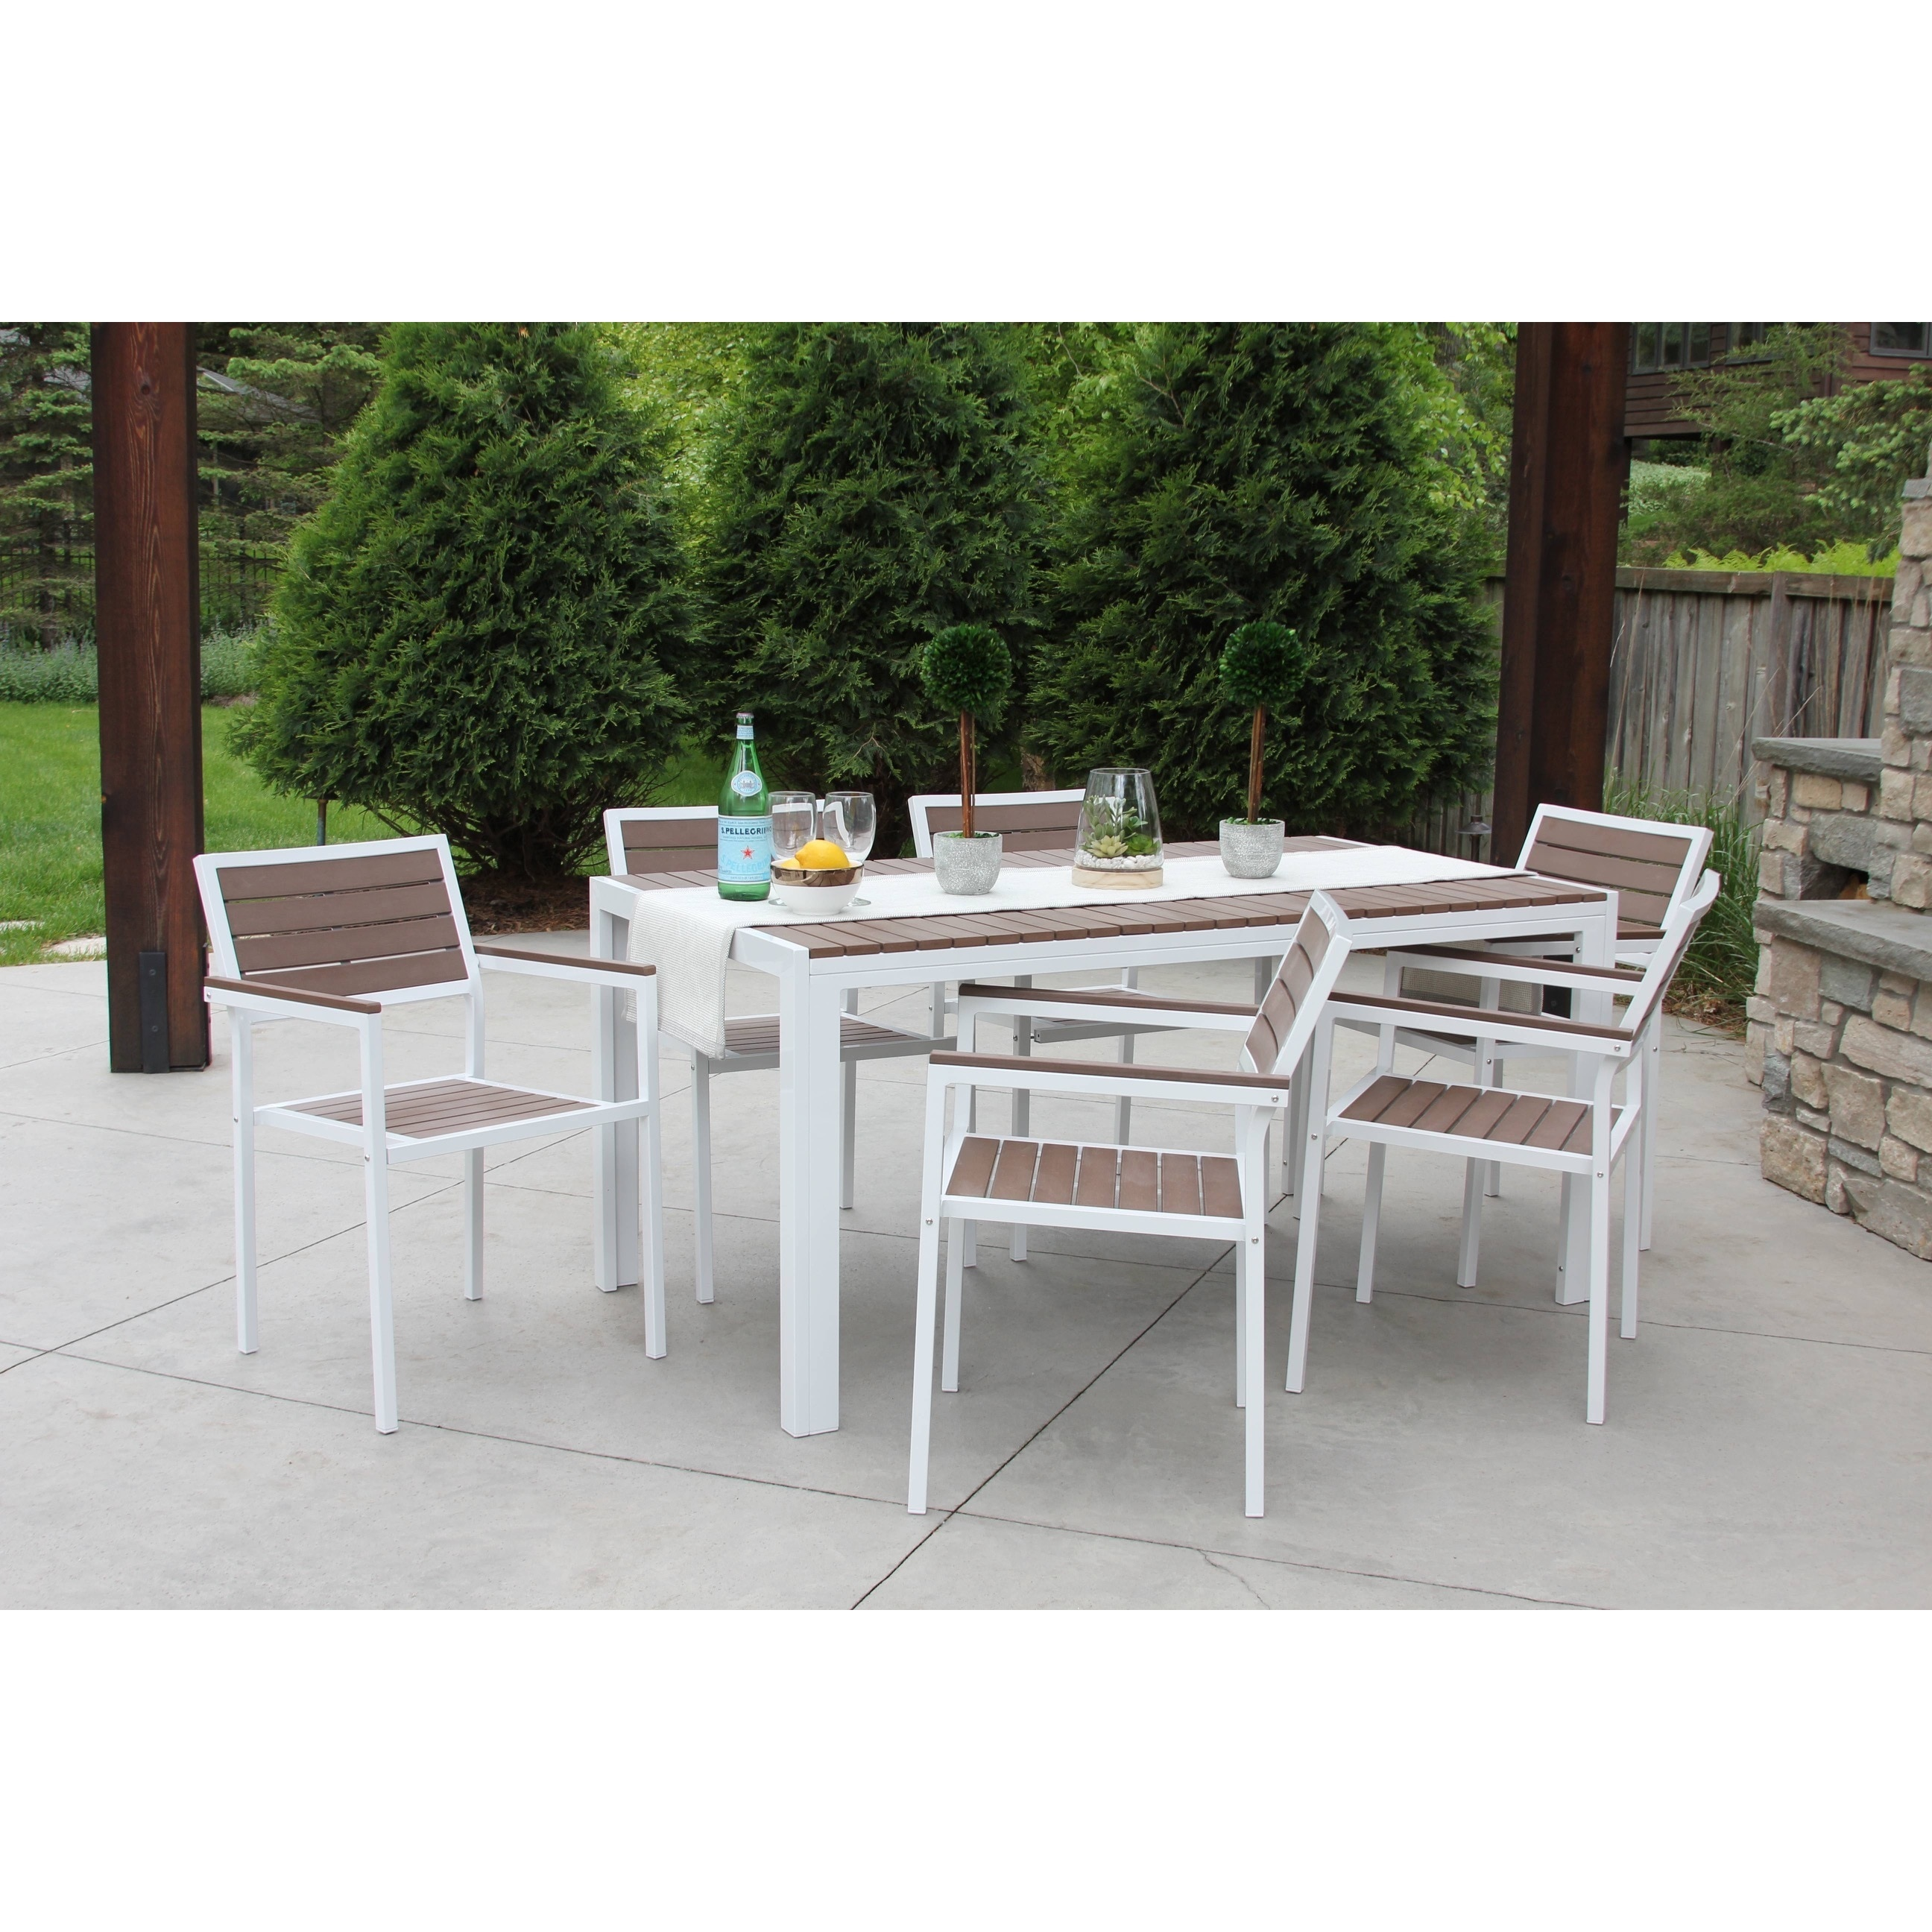 Outdoor Patio Furniture Dining Table Discontinued 7 Piece All Weather Outdoor Patio Furniture Garden Deck Dining Set White Bay Brown W Premium Outdoor Storage Cover